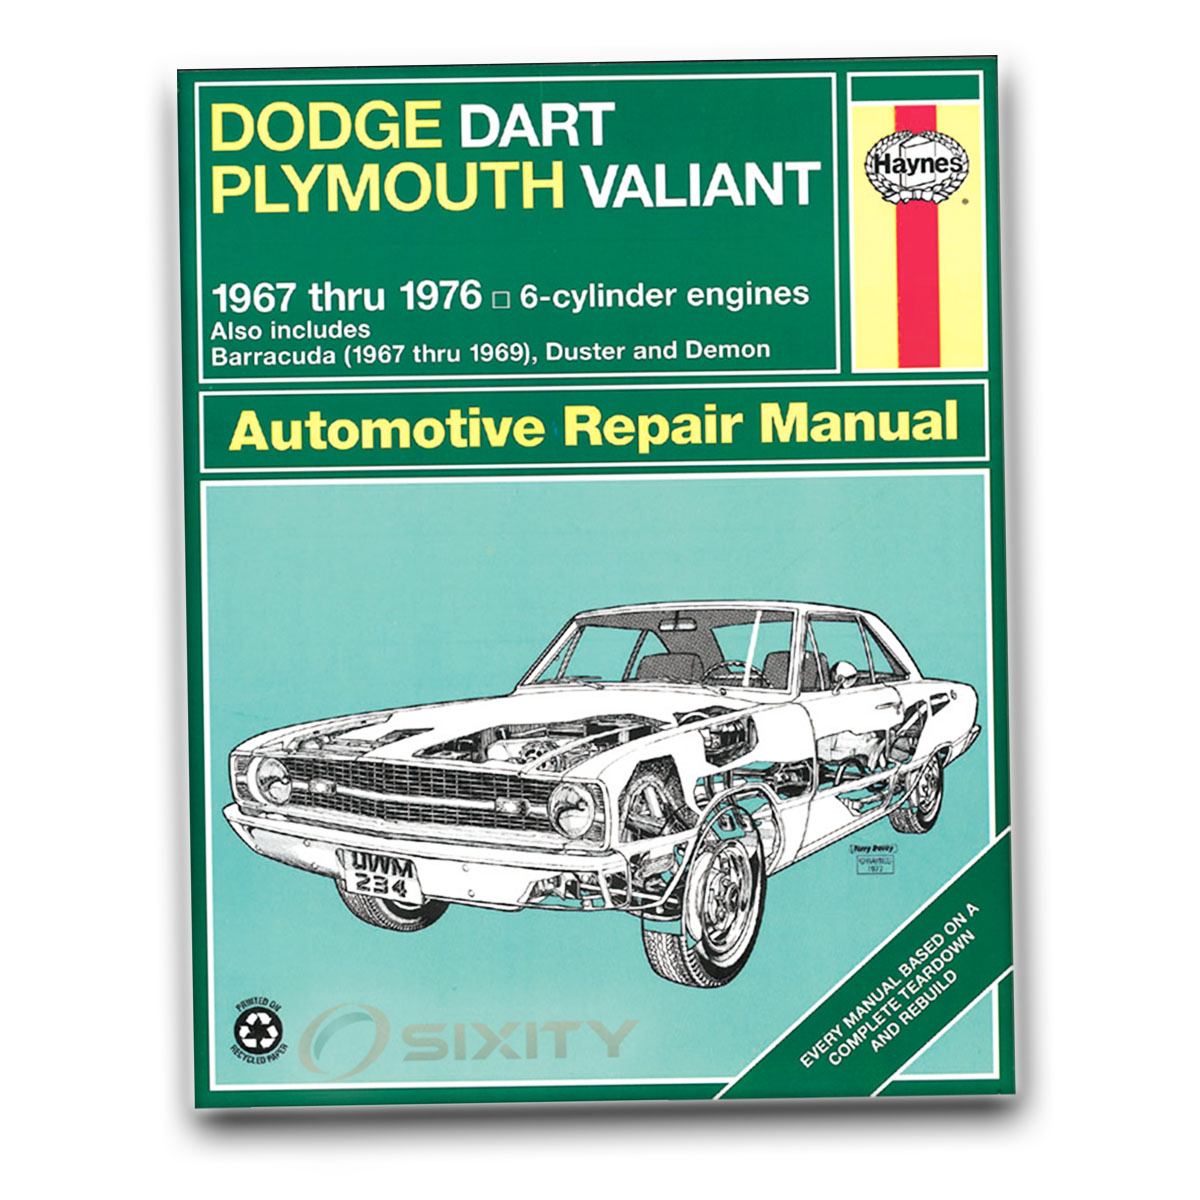 haynes dodge dart plymouth valiant 67 76 repair manual 30025 shop rh ebay com dodge dart service manual 2013 dodge dart maintenance manual